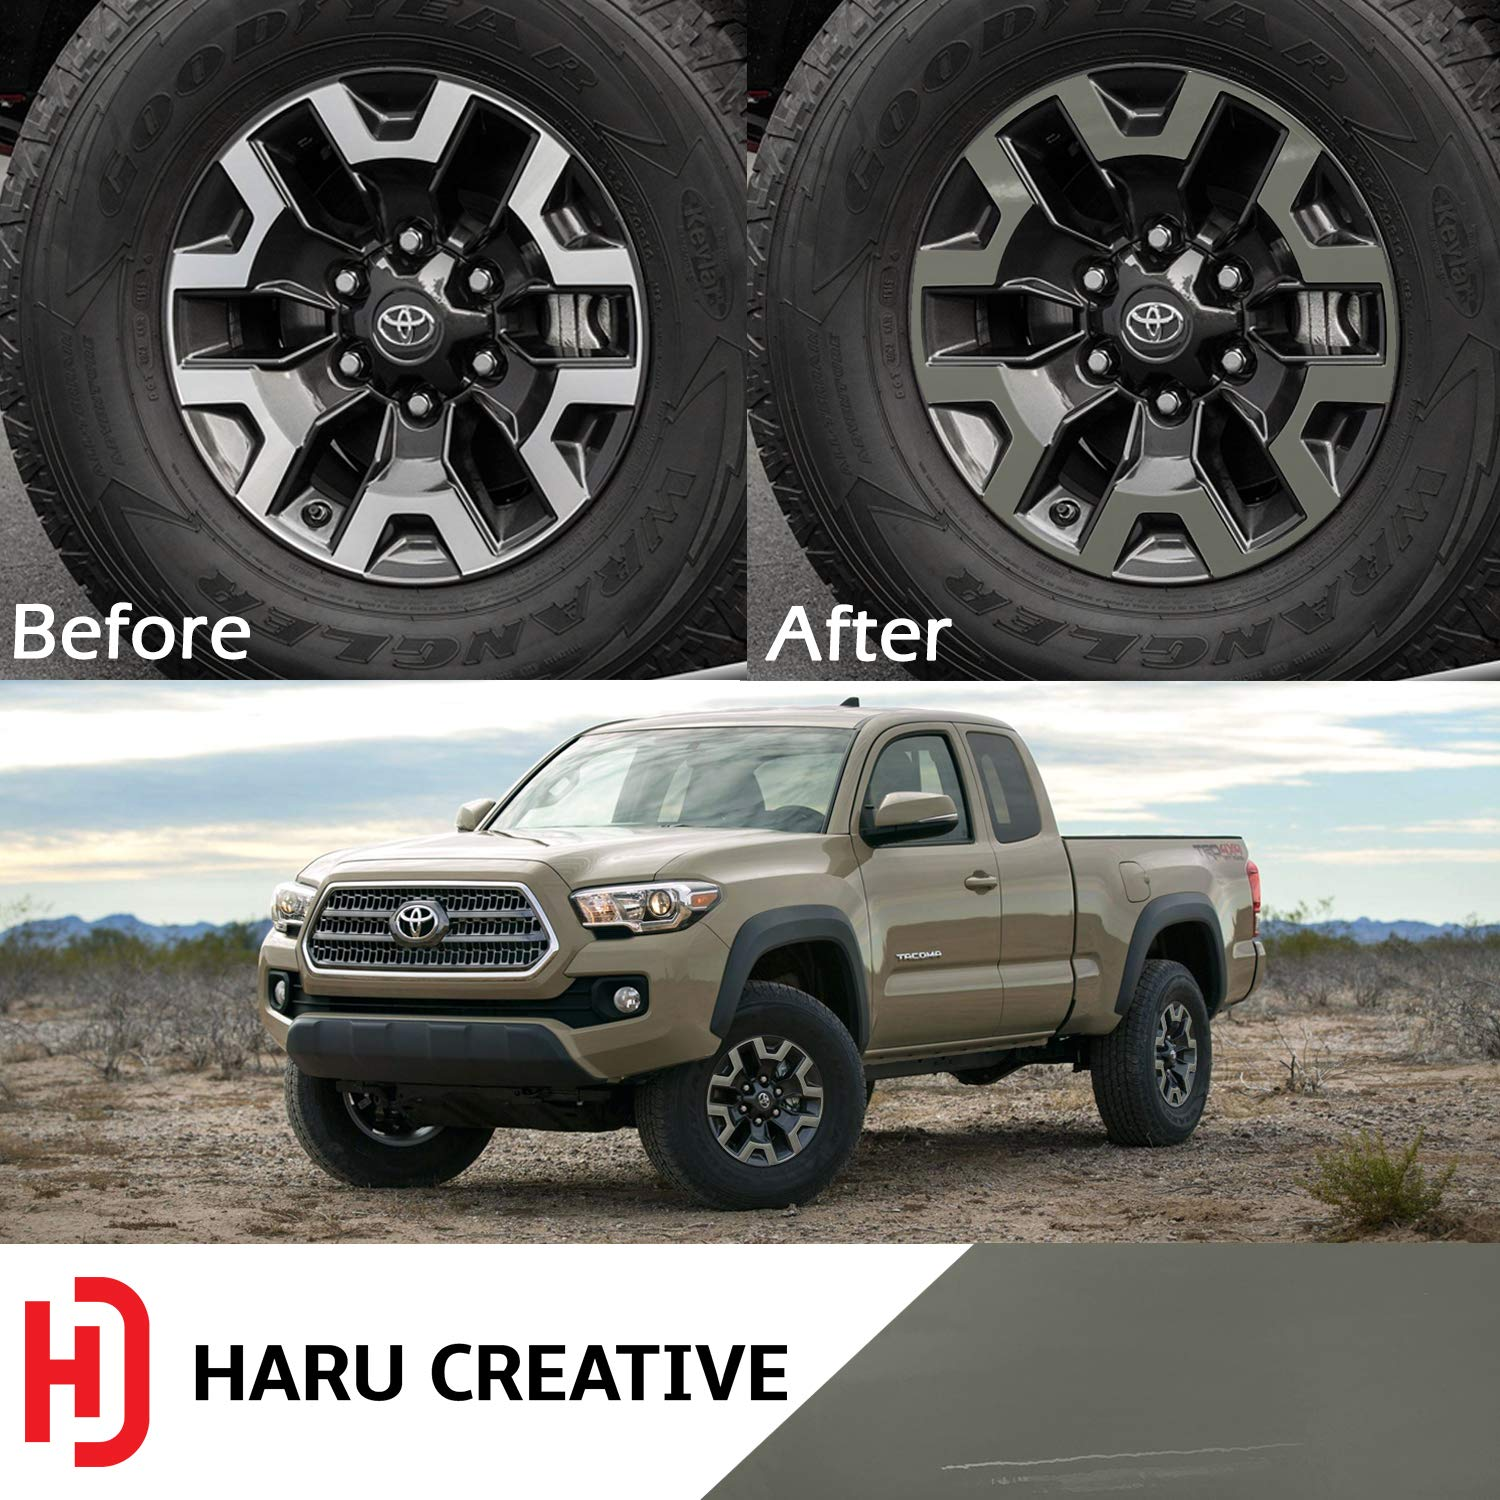 Wheel Rim Overlay Vinyl Decal Sticker Compatible with and Fits Toyota Tacoma TRD Off Road 2016-2018 Haru Creative Gloss Black Loyo